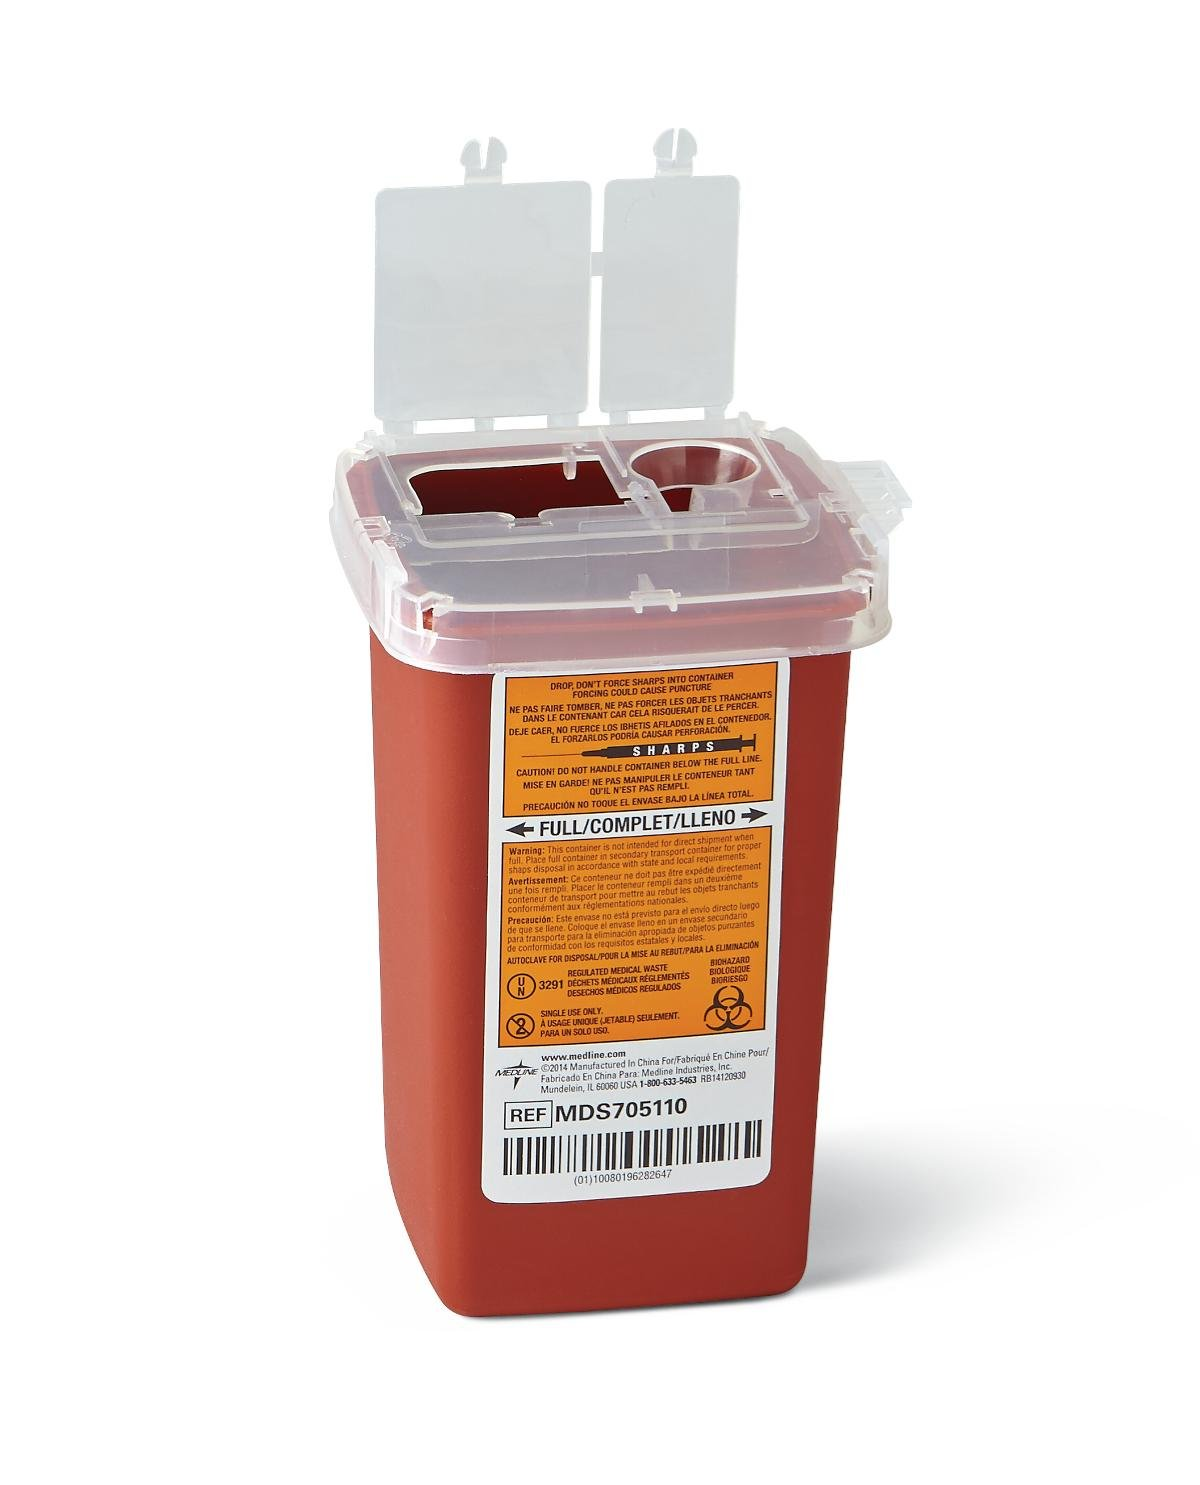 Medline MDS705110 Sharps Container, Phlebotomy, Red (Pack of 100)